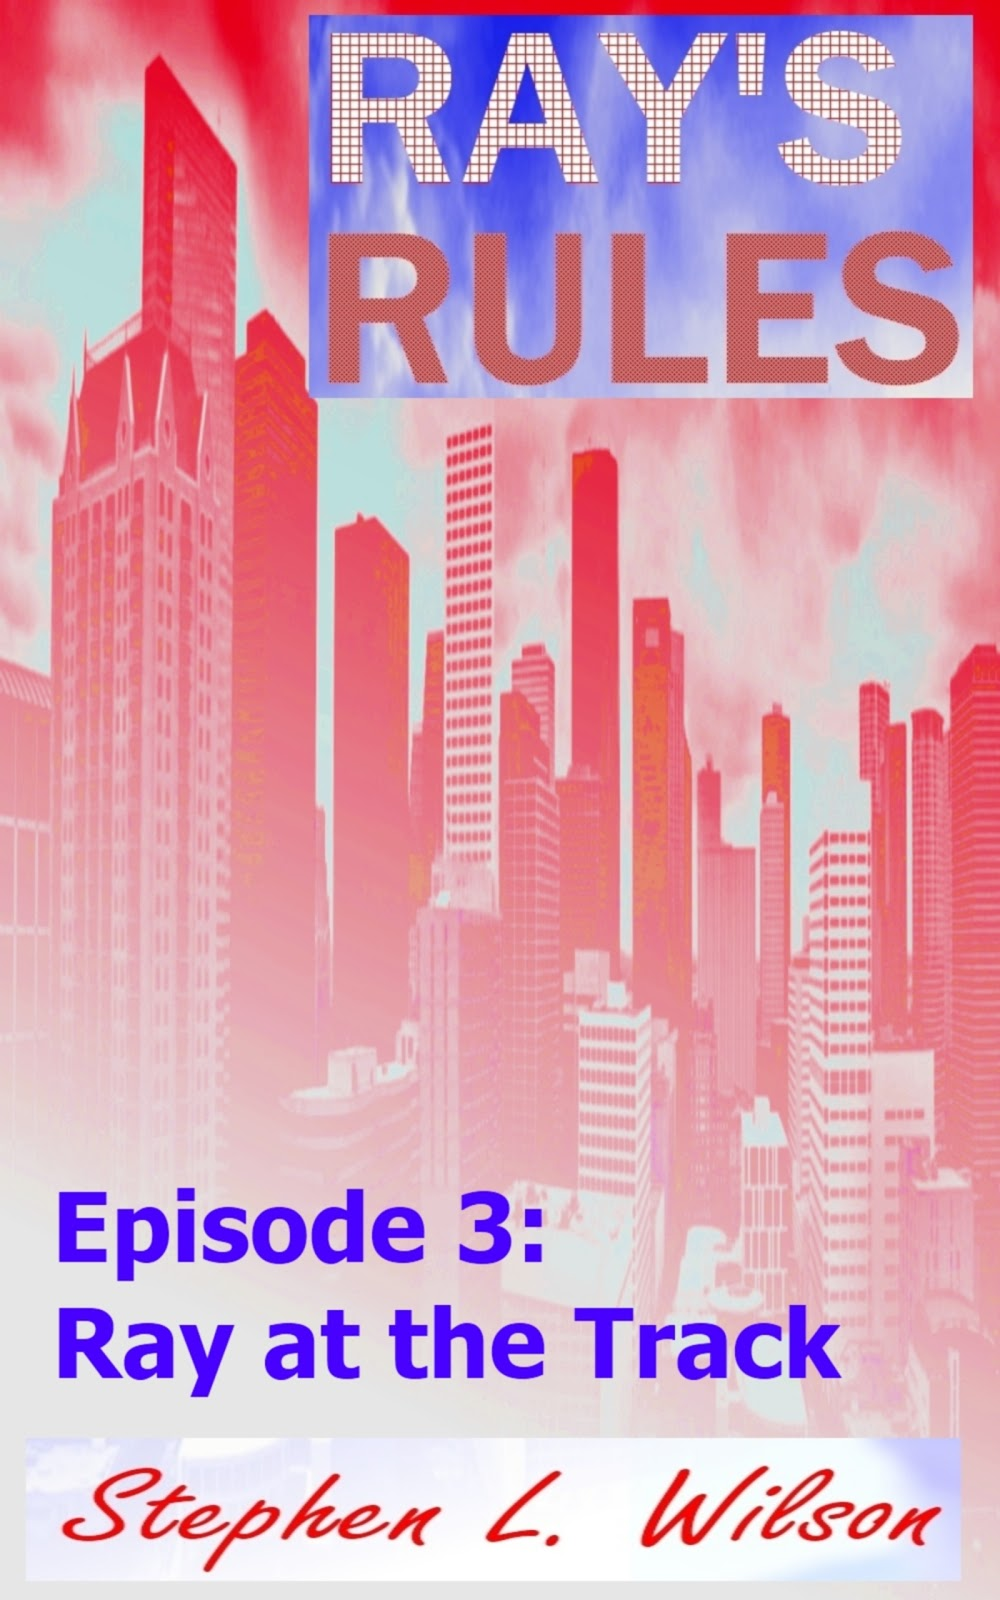 REVIEWER COPY - RAY'S RULES EPISODE 3